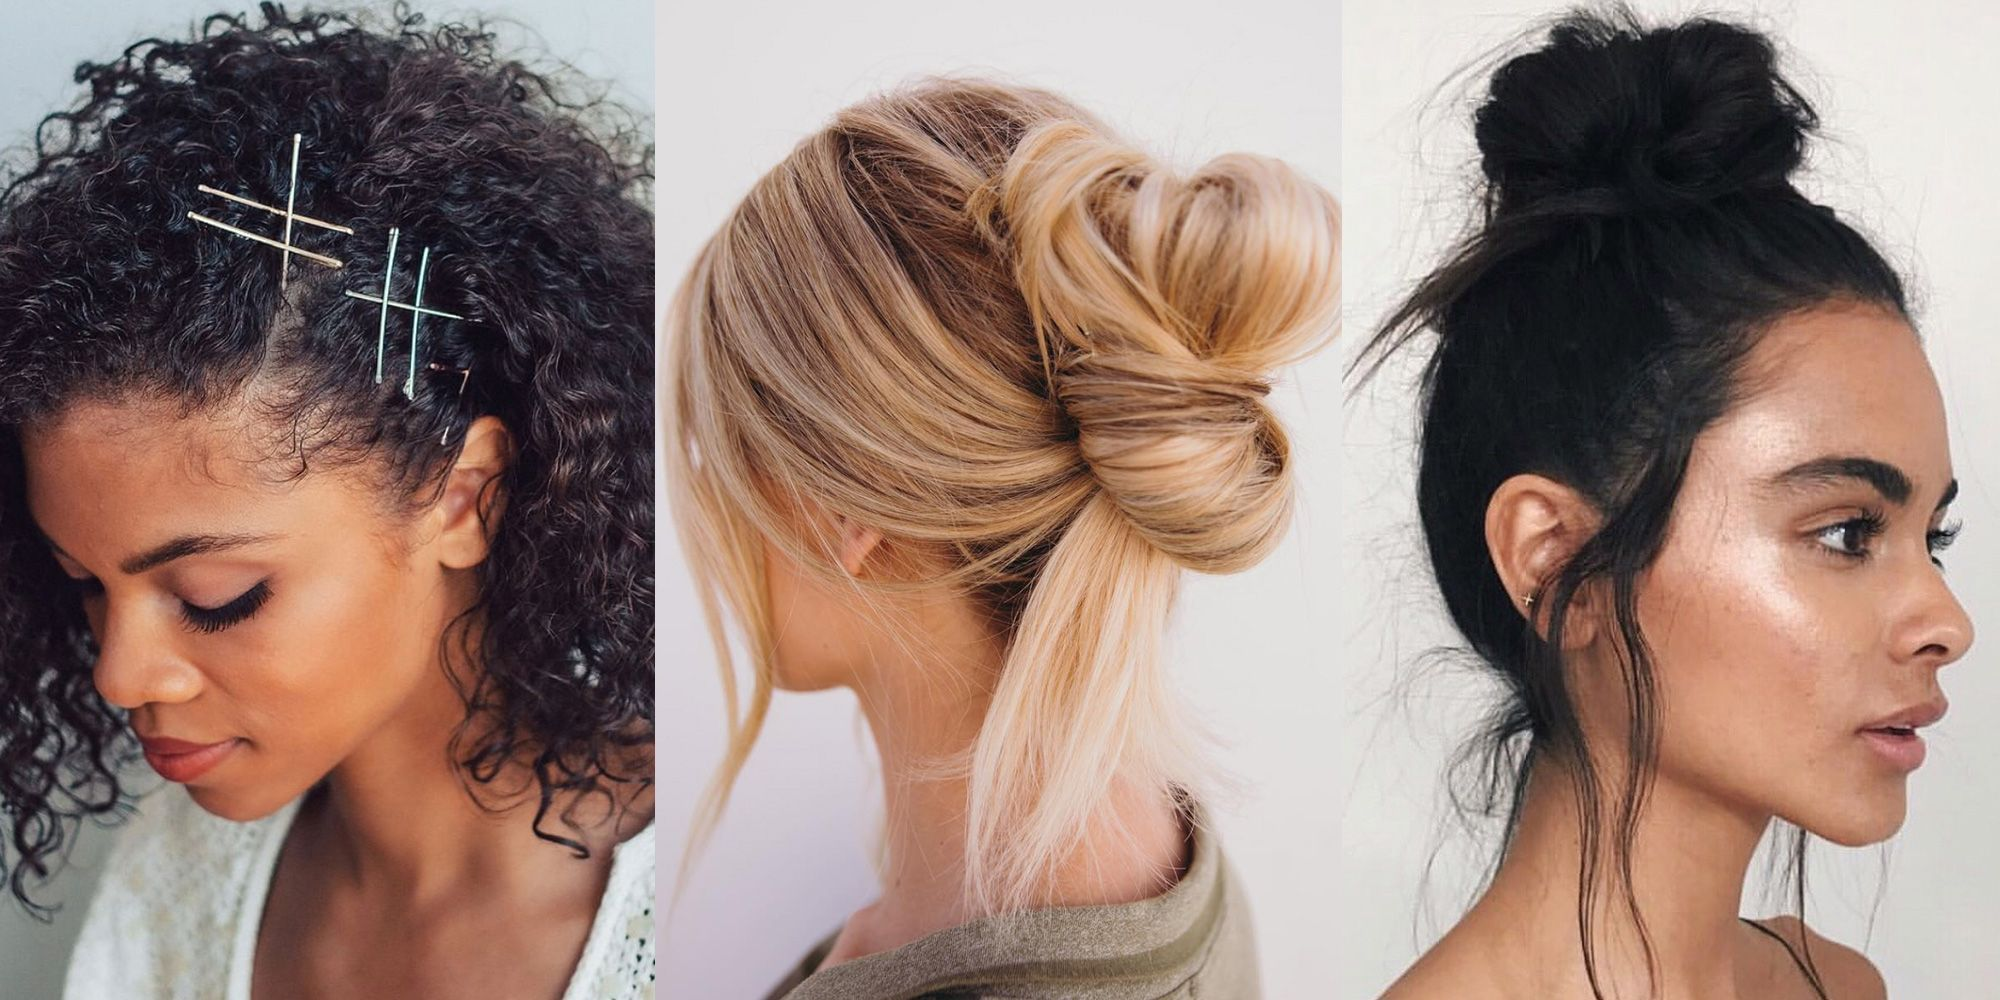 11 Cute Hairstyles for Summer 2019 \u2013 Ways to Style Hair in